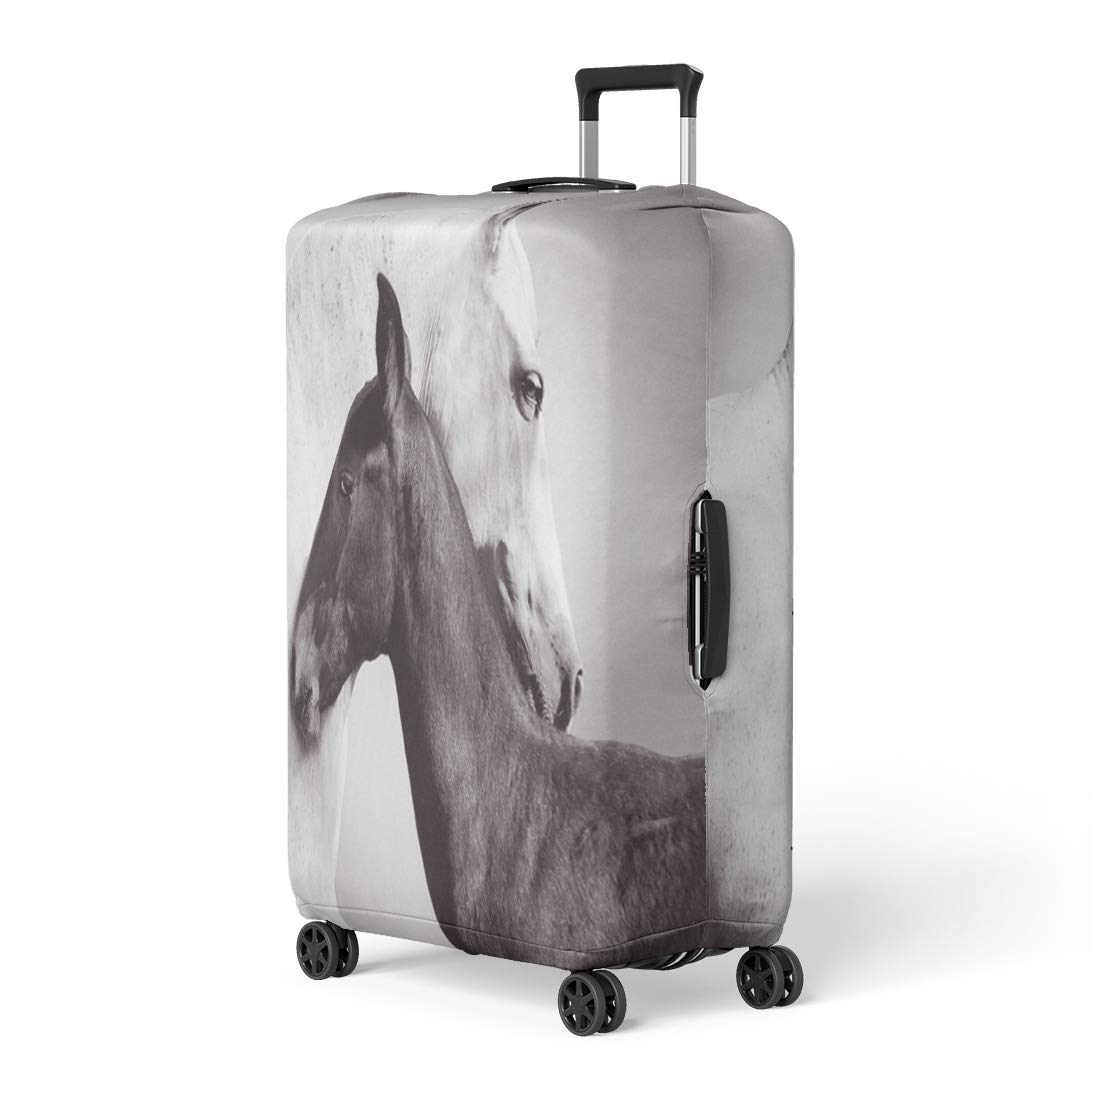 Semtomn Luggage Cover White Andalusia Mare Is Closely Entwined Next to Her Travel Suitcase Cover Protector Baggage Case Fits 18-22 Inch